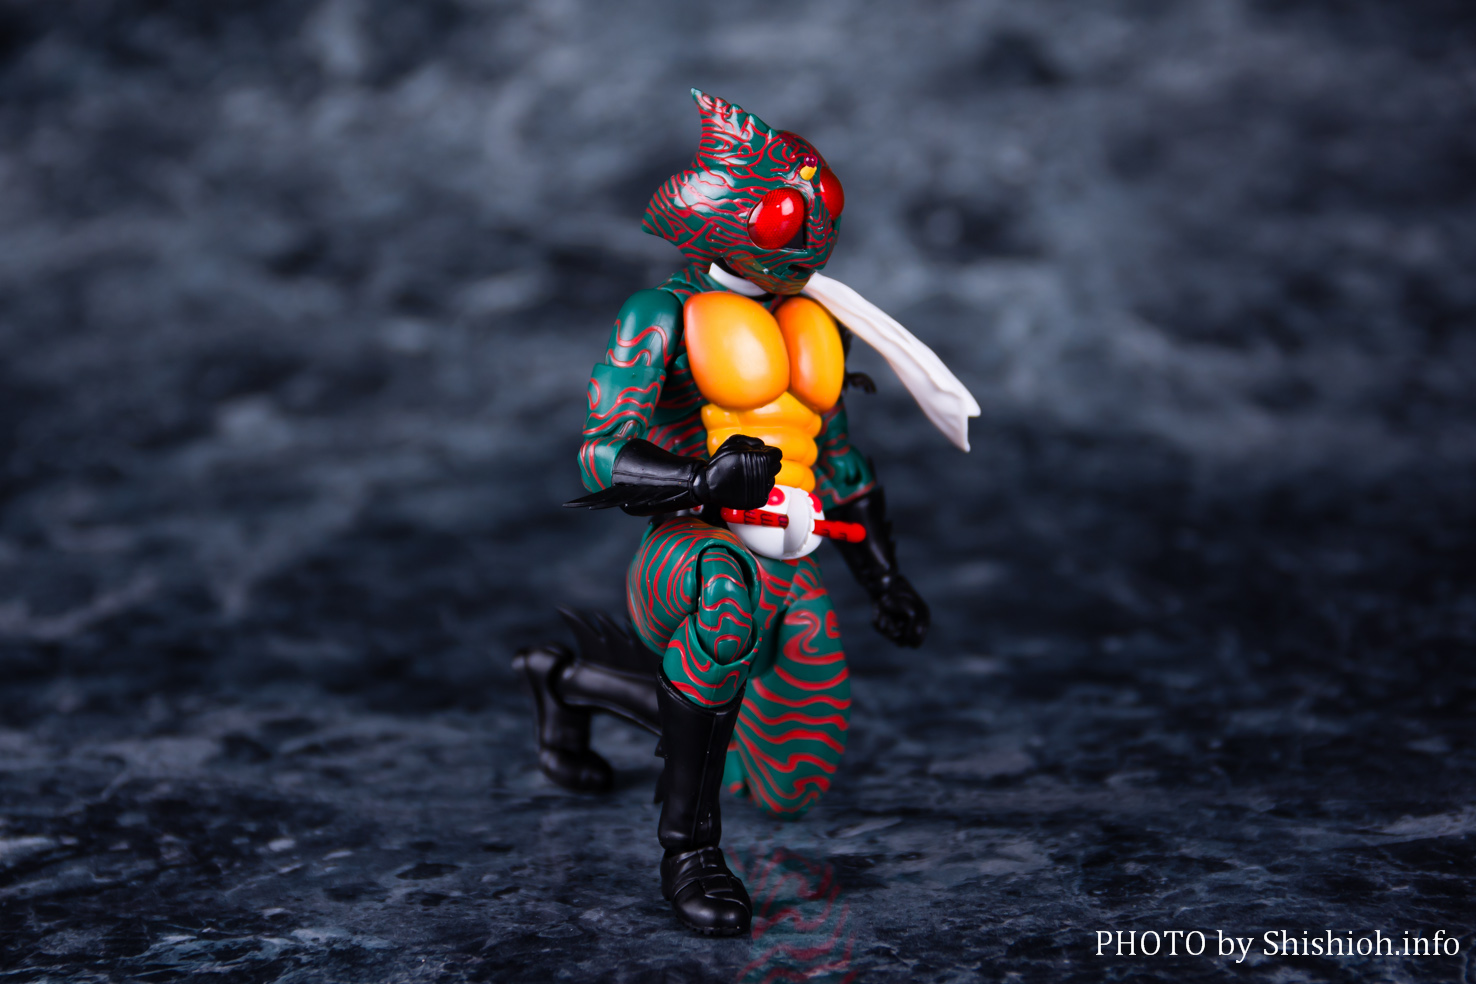 S.H.Figuarts(真骨彫製法)仮面ライダーアマゾン